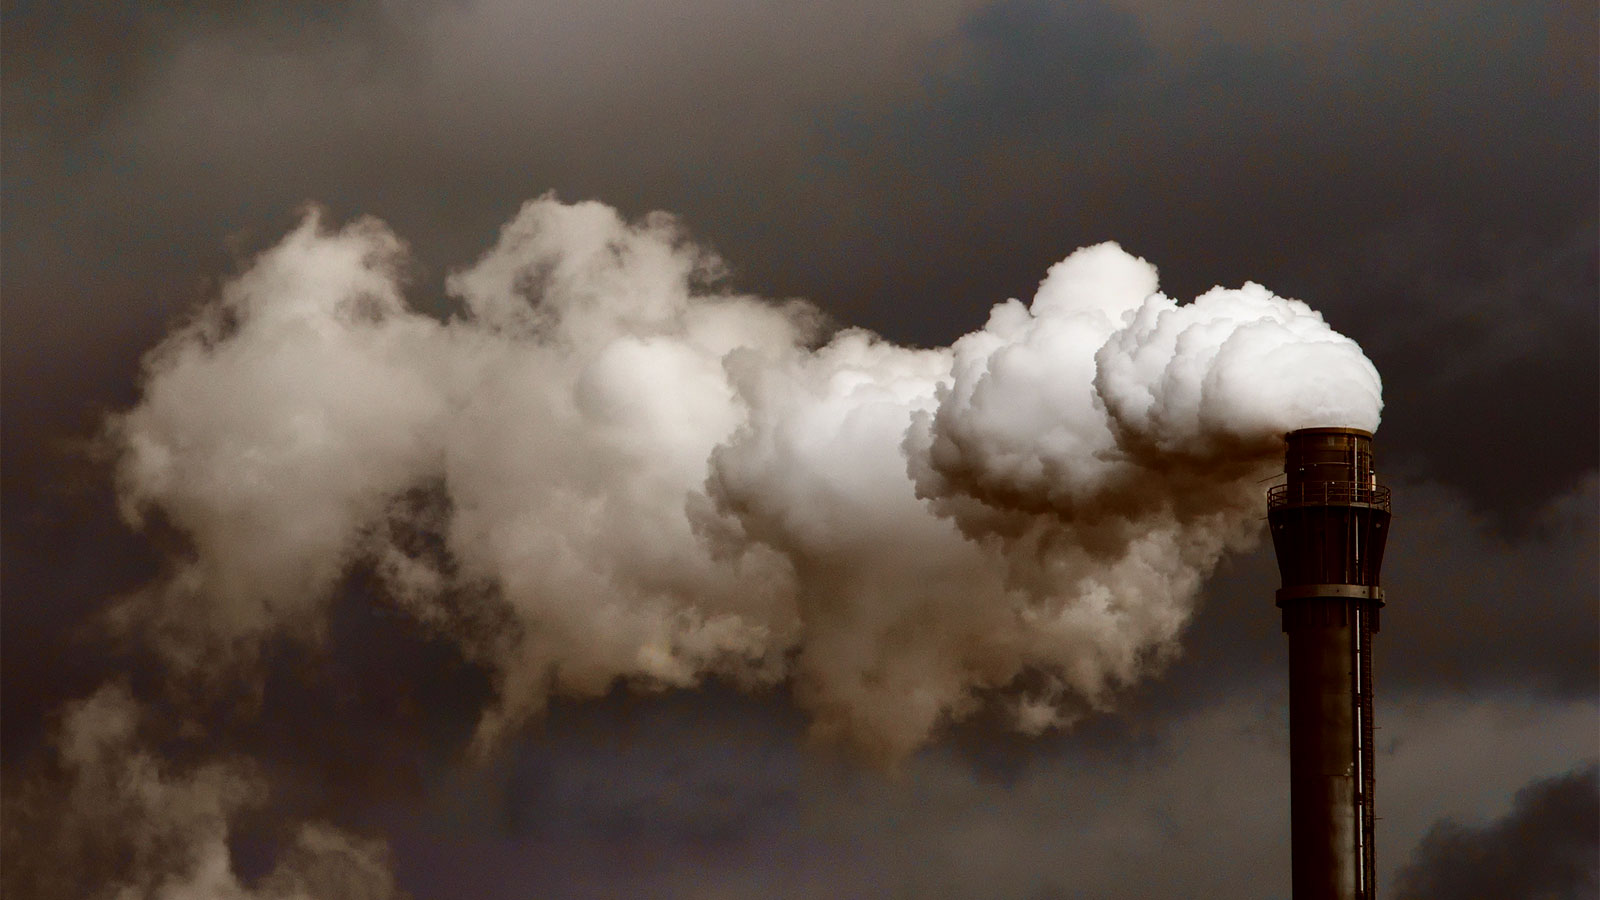 Dirty cloud coming out of smoke stack